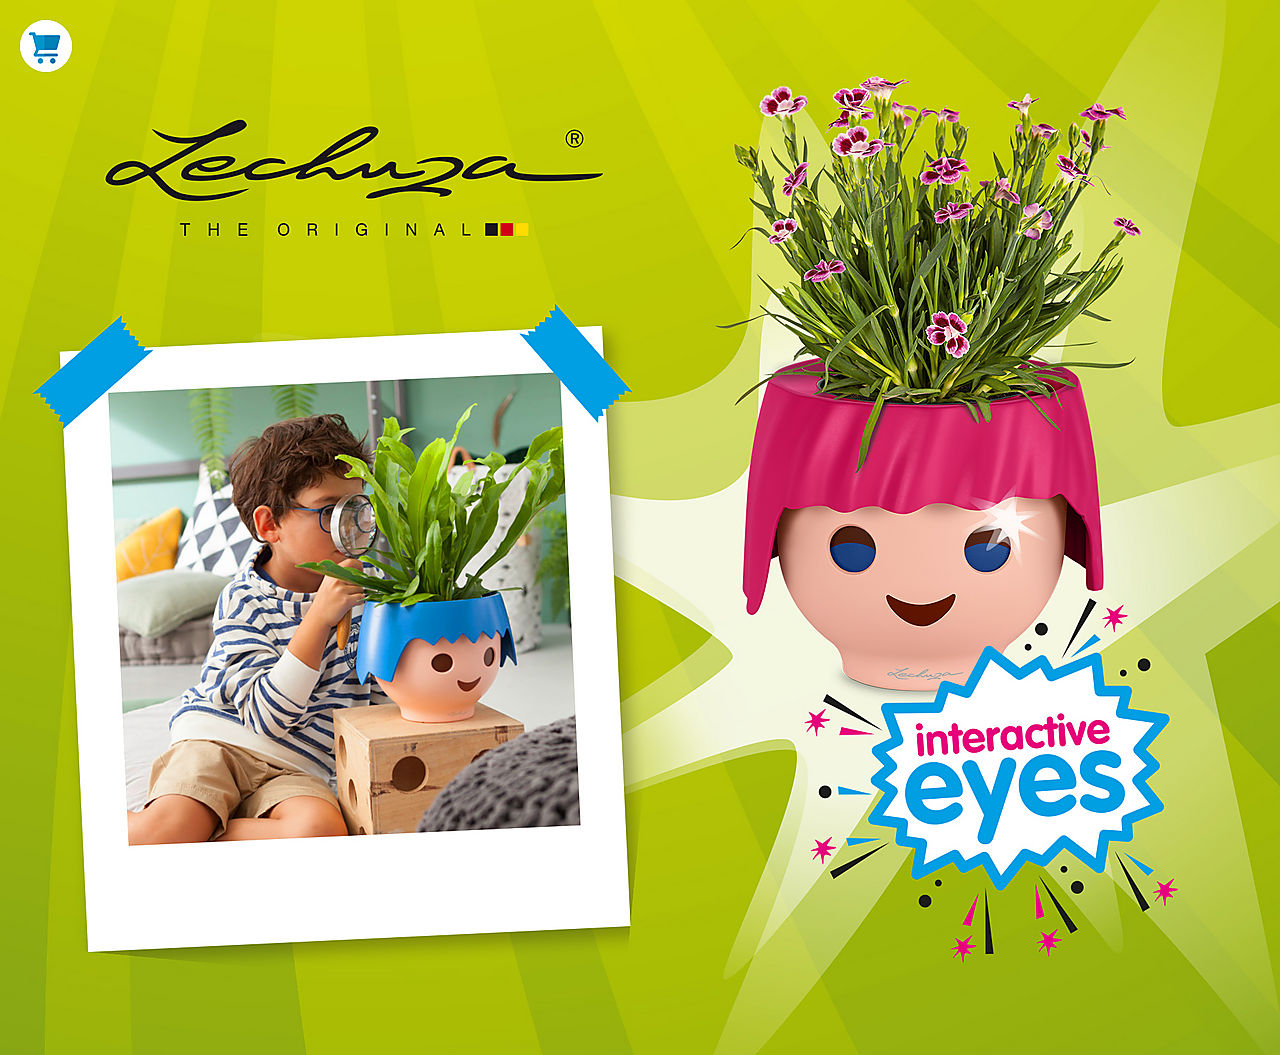 Come and find the combination of Playmobil und Lechuza - The Playmorized OJO